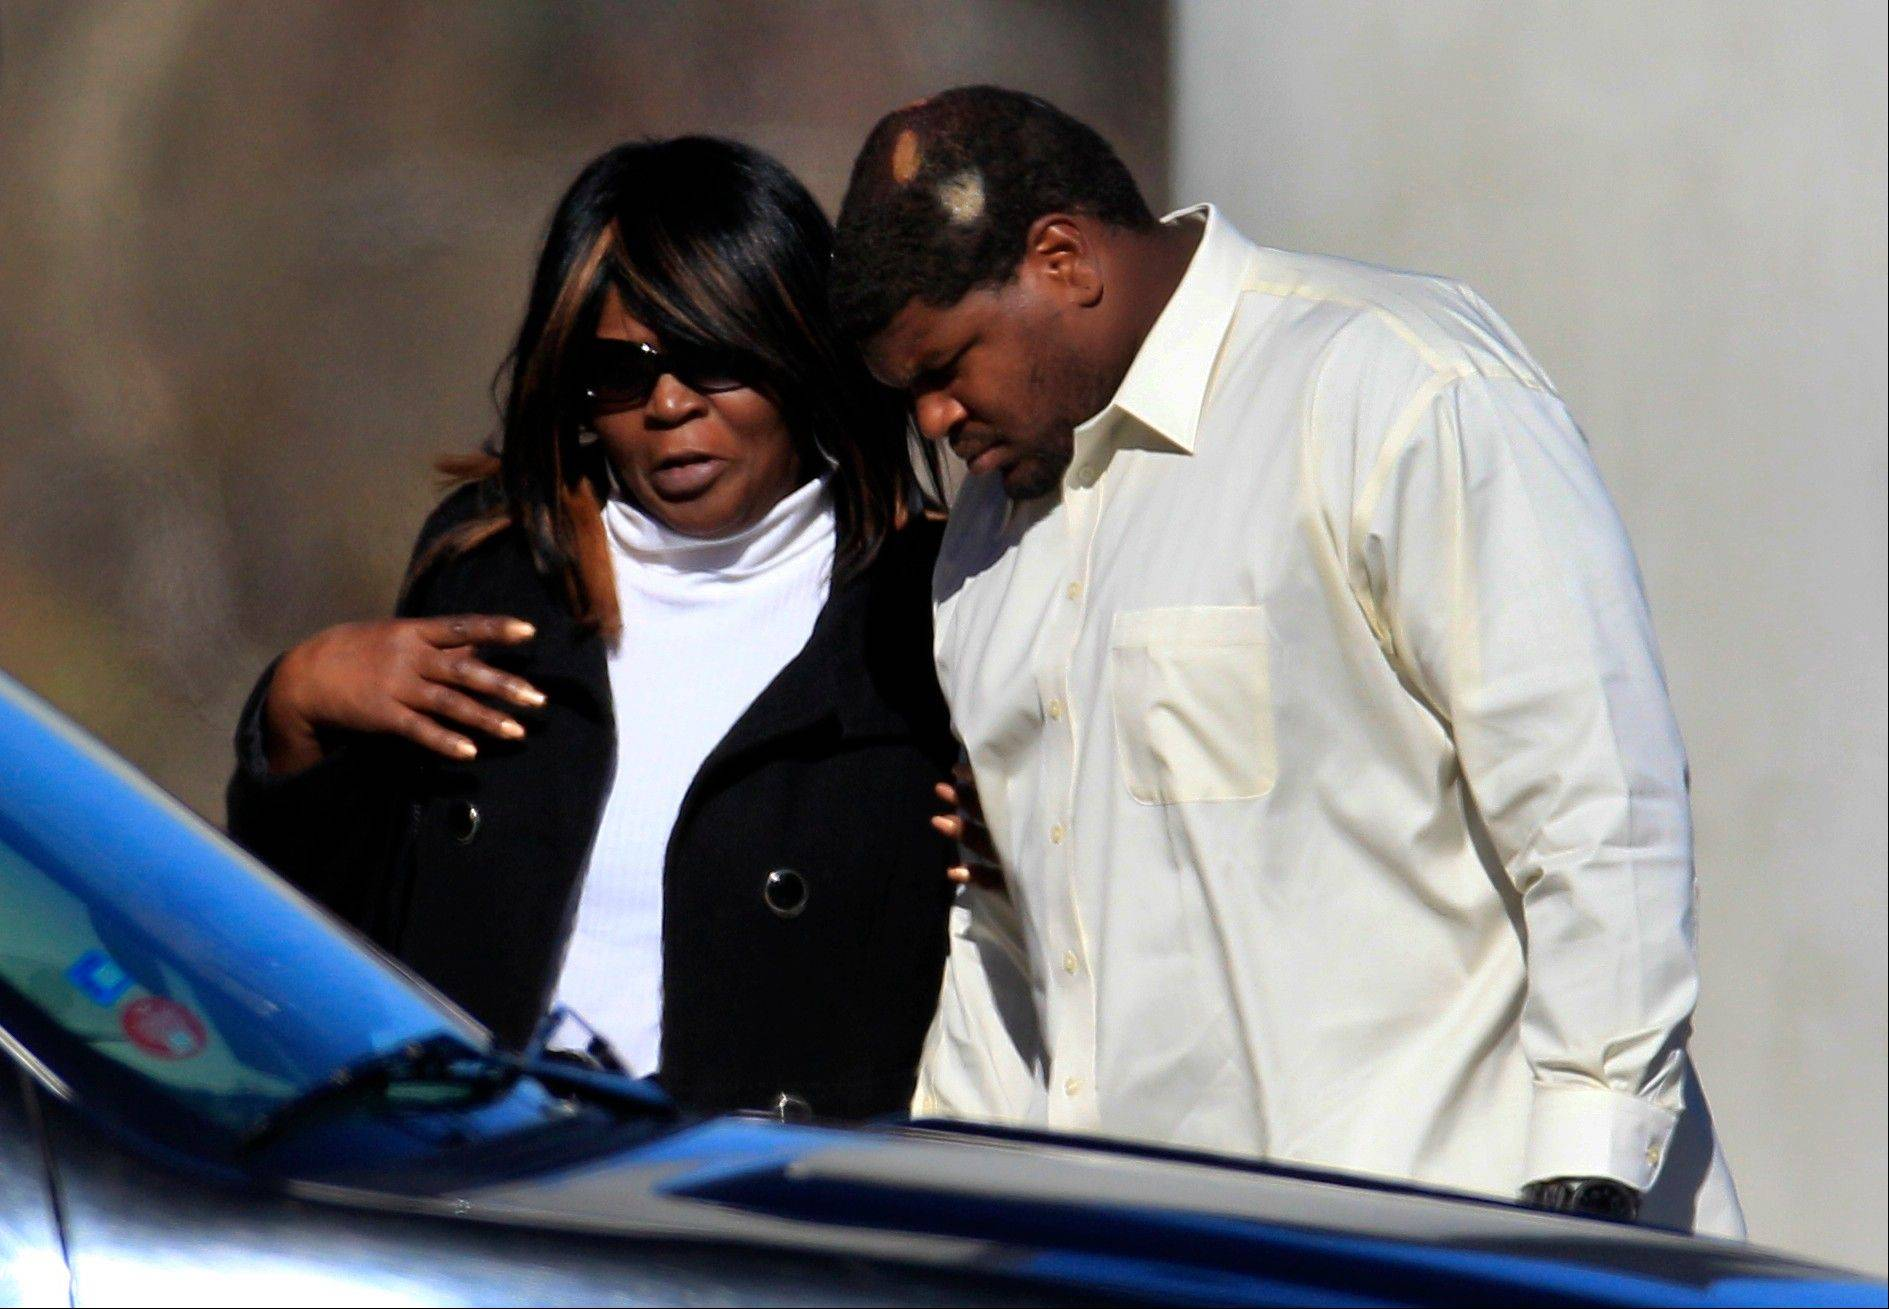 Dallas Cowboys football player Josh Brent, right, arrives embracing an unidentified person Tuesday at a memorial service for teammate Jerry Brown at Oak Cliff Bible Fellowship education center in Dallas. Brown died in a suspected drunken-driving accident on Saturday. Brent was the driver and is charged with intoxication manslaughter.